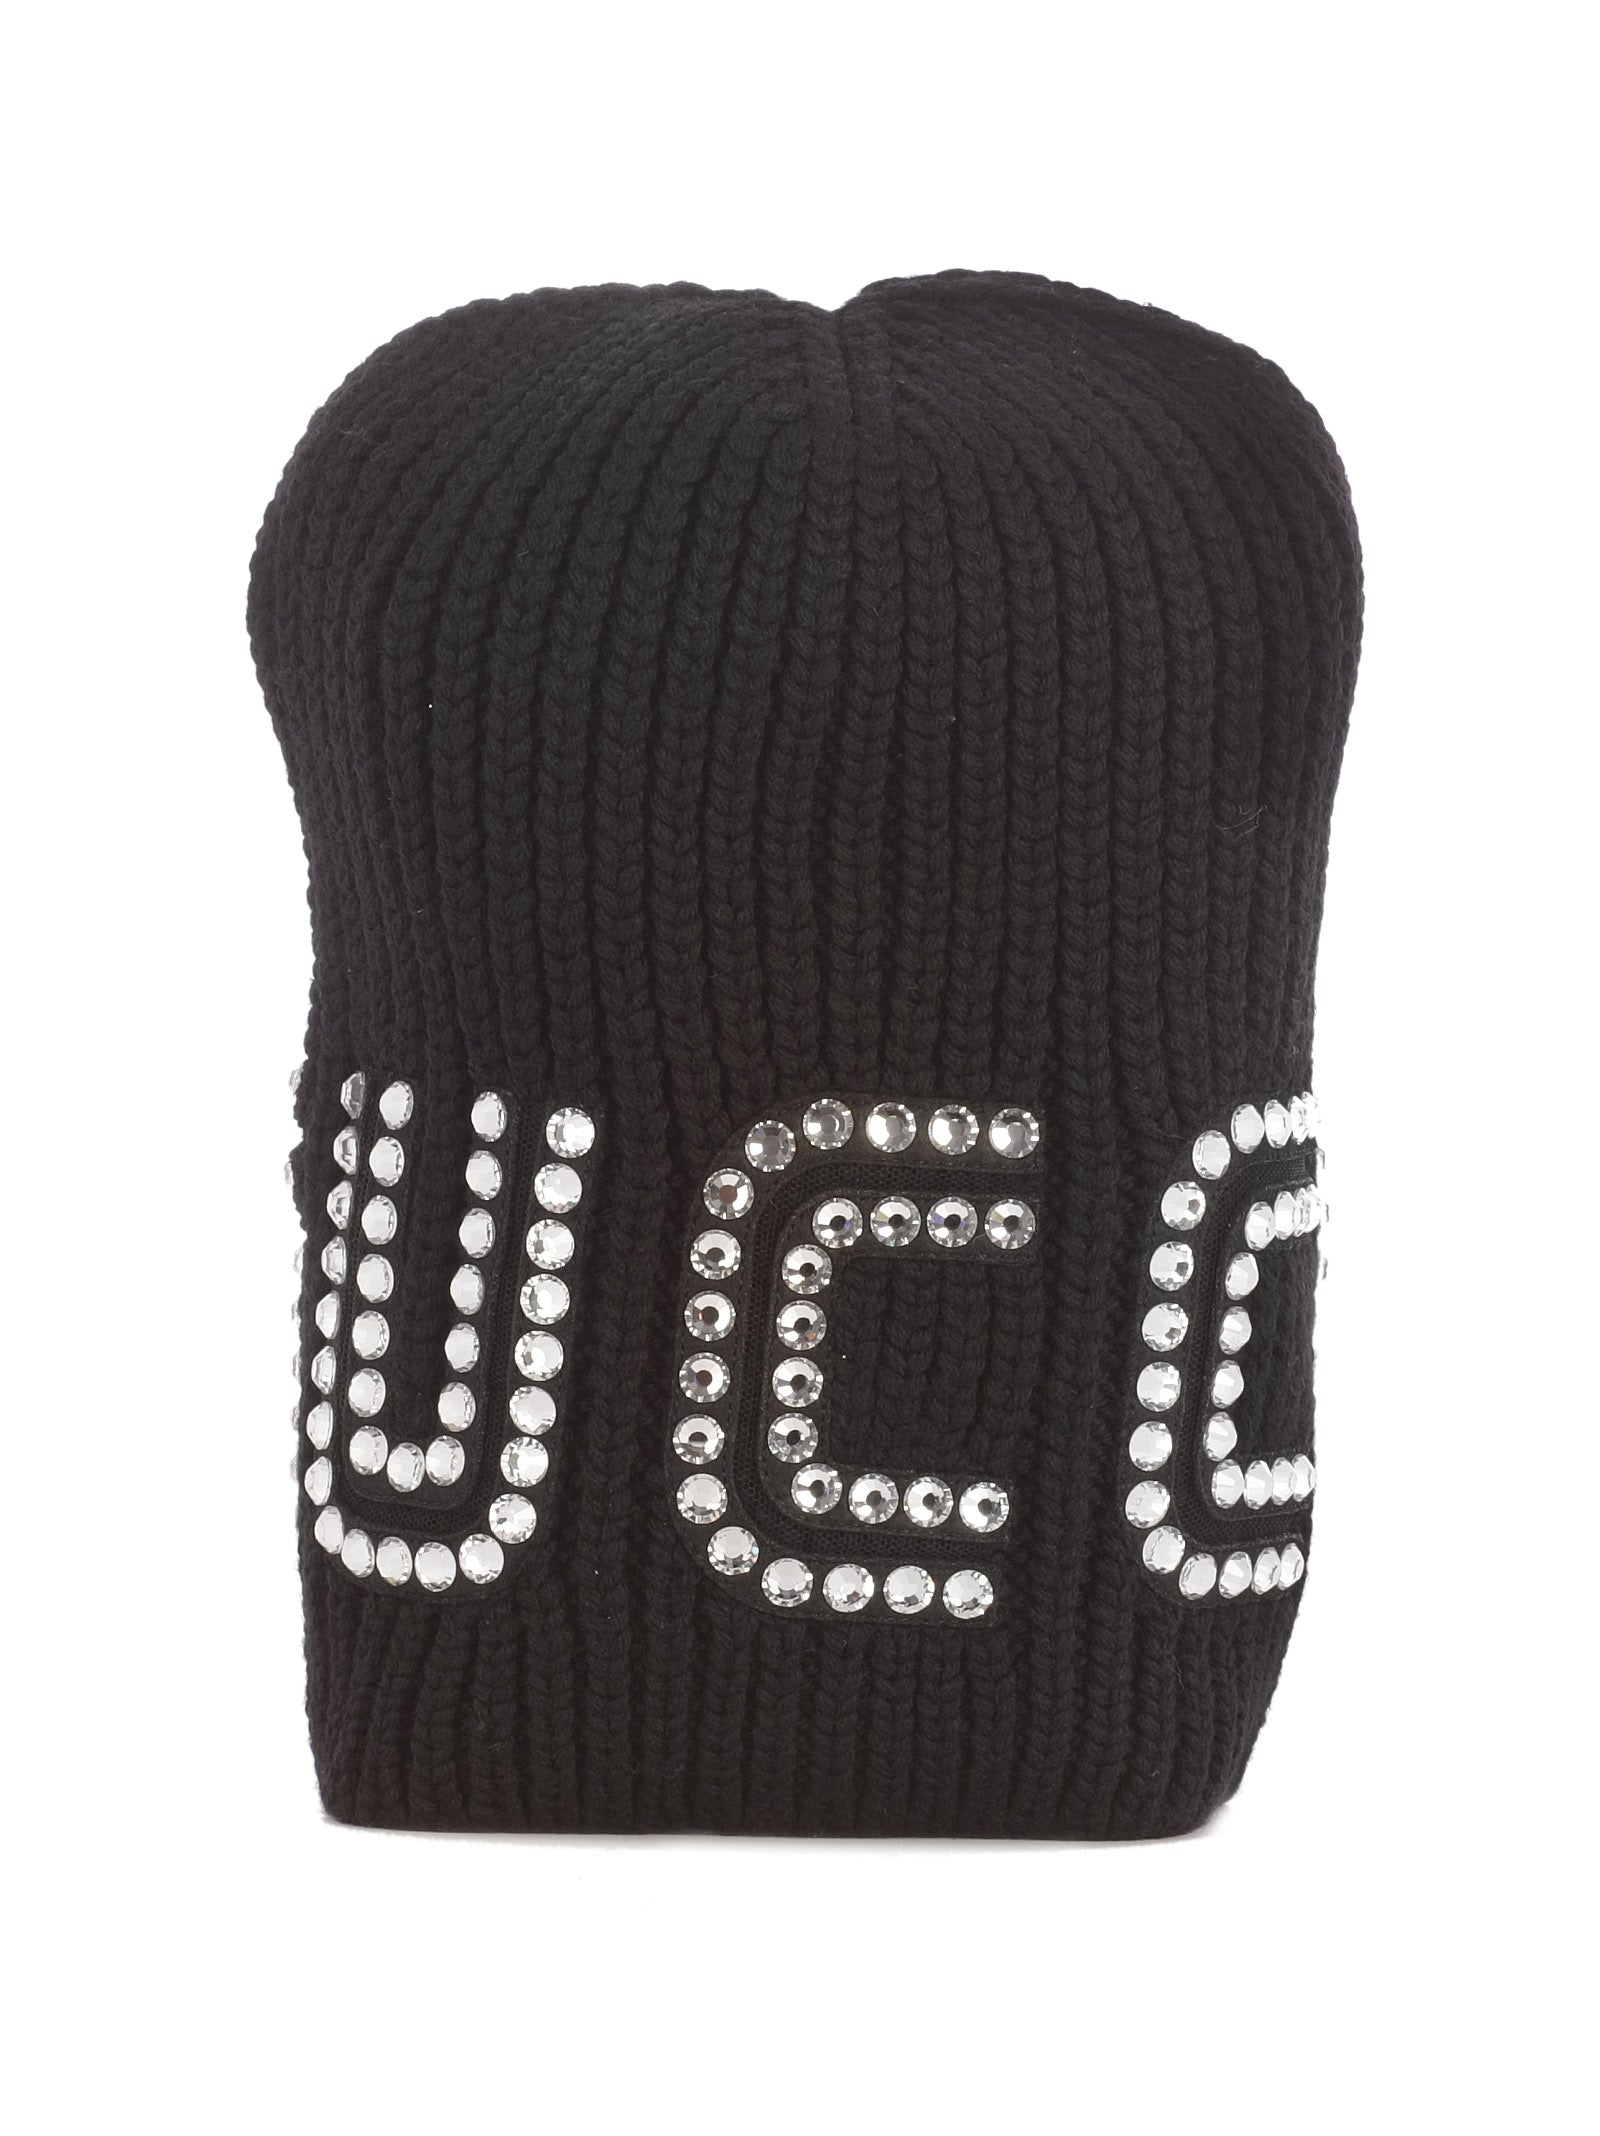 b287d2e5d11 Gucci Guccy Crystal Embellished Beanie In Black